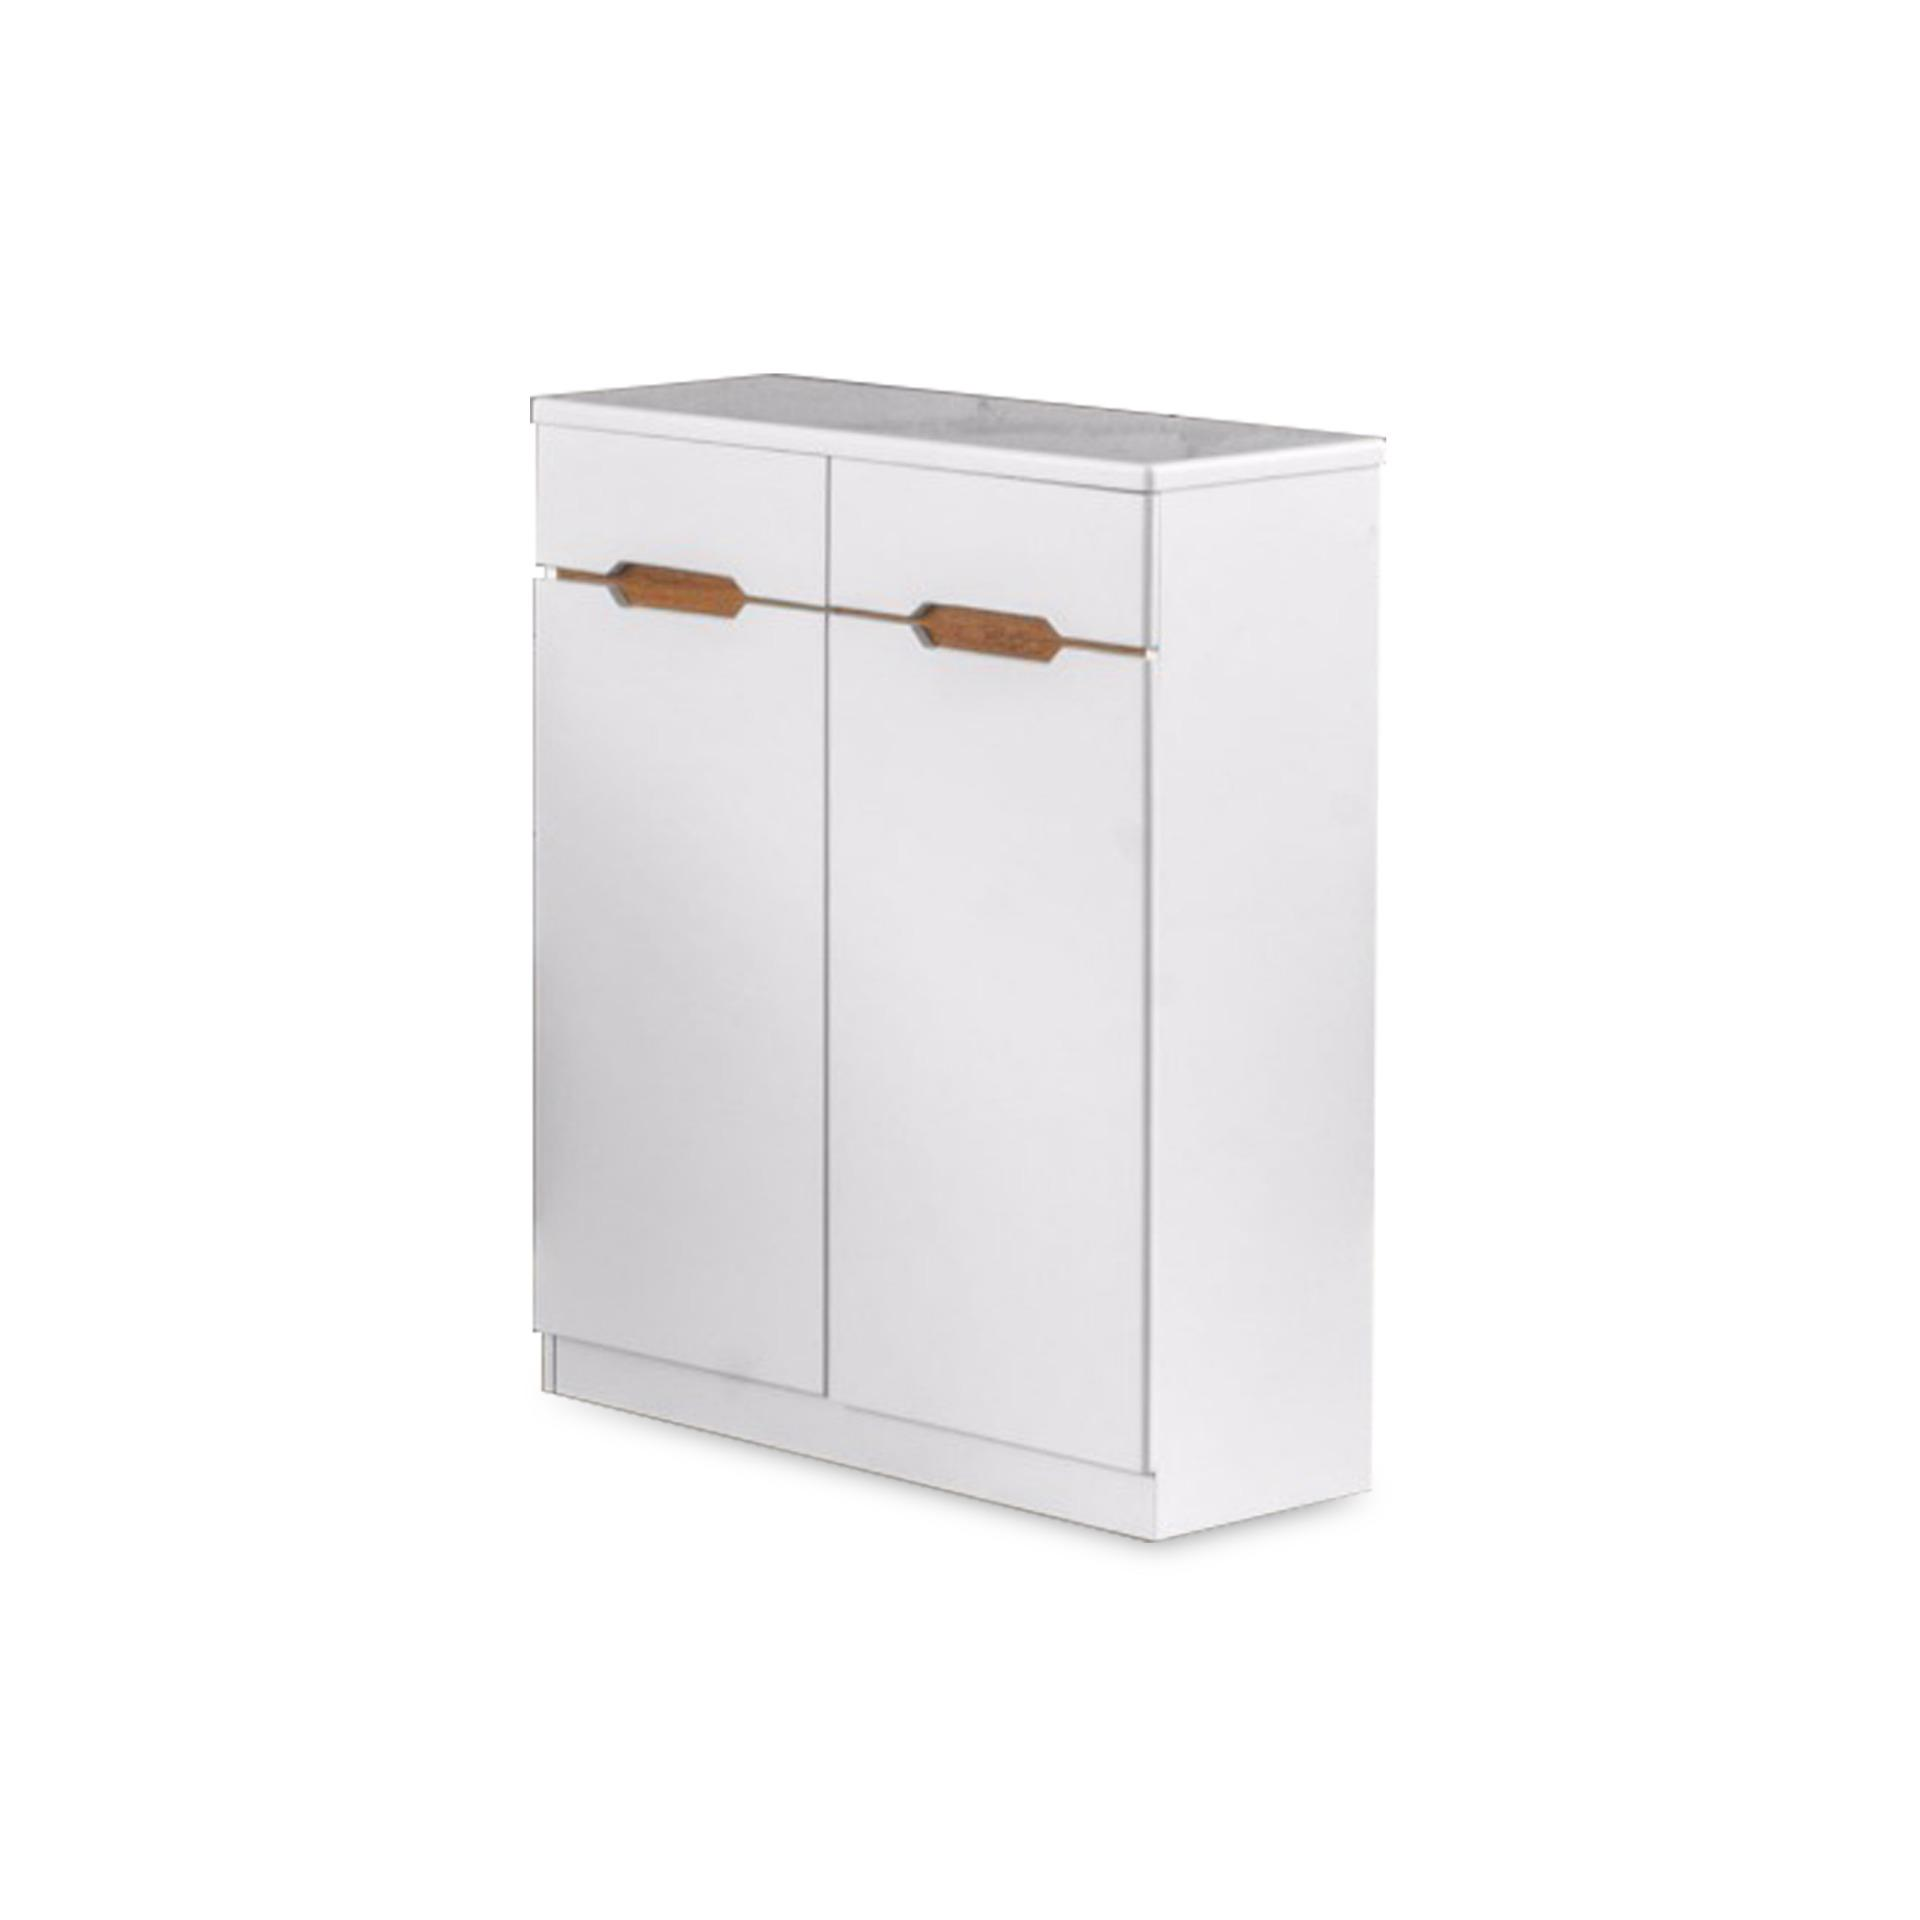 Aluin 2 Doors Shoe Cabinet (FREE DELIVERY)(FREE ASSEMBLY)